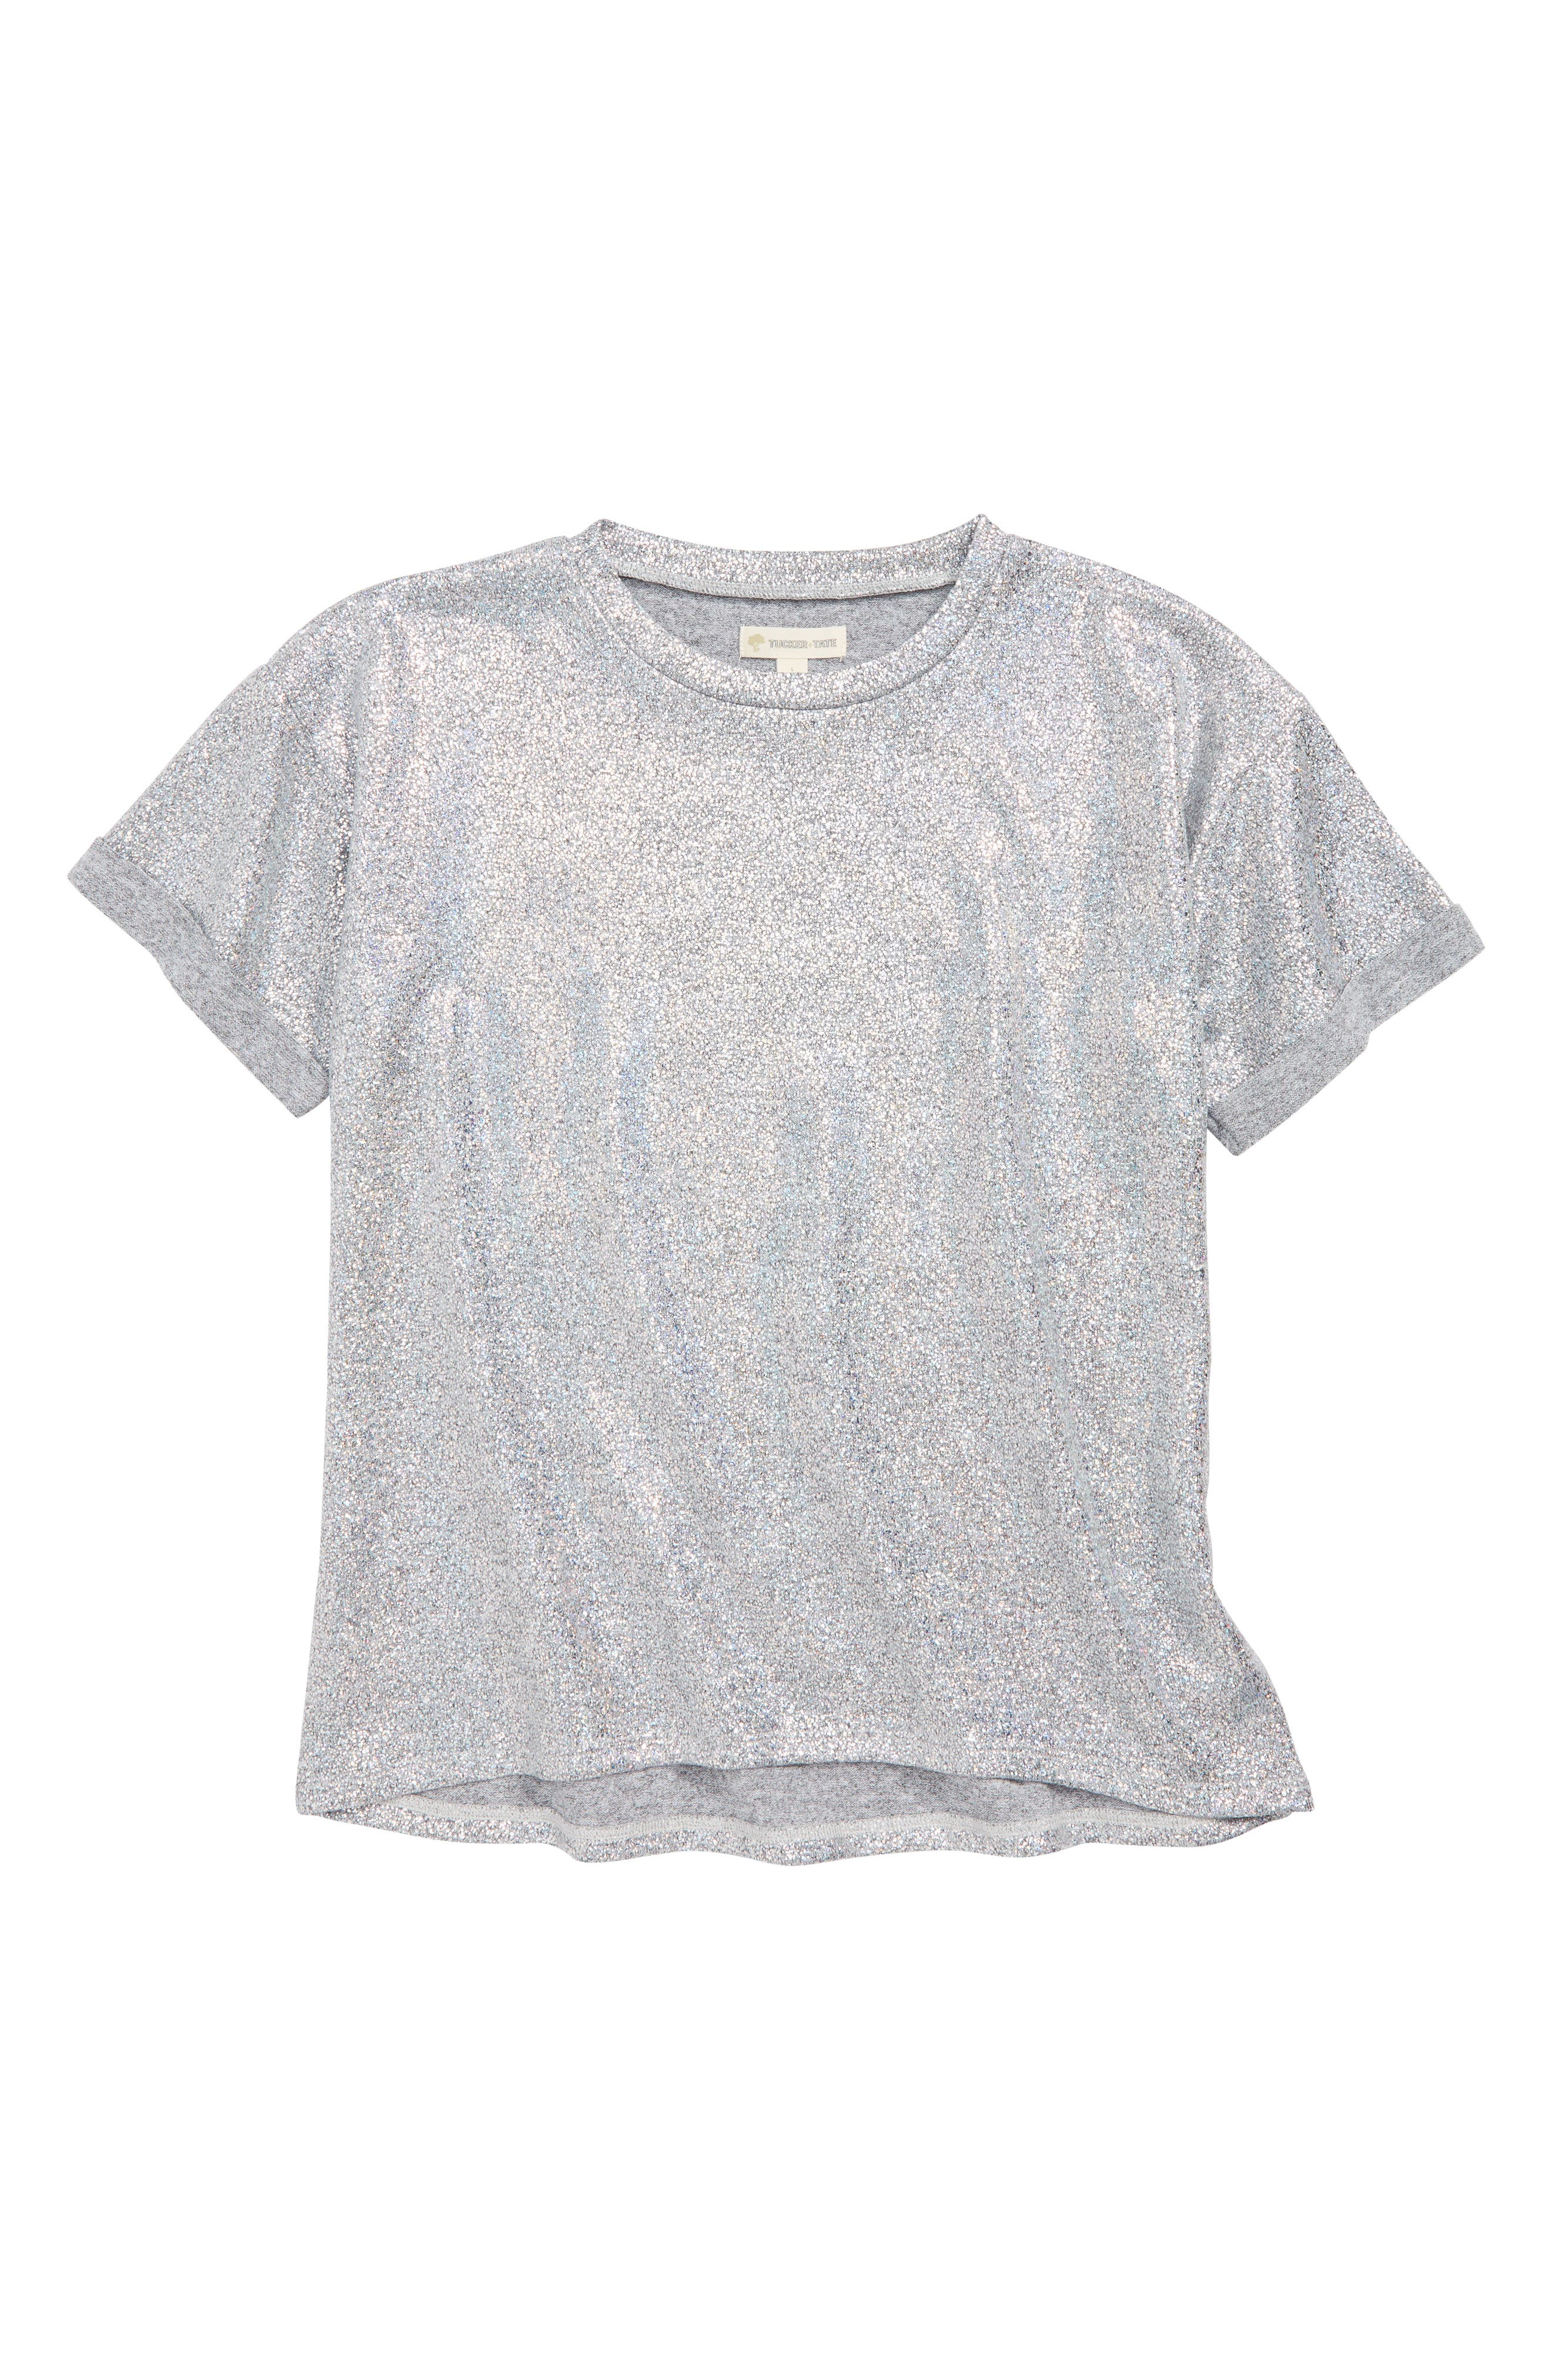 Oversize Sparkle Tee,                             Main thumbnail 1, color,                             METALLIC SILVER